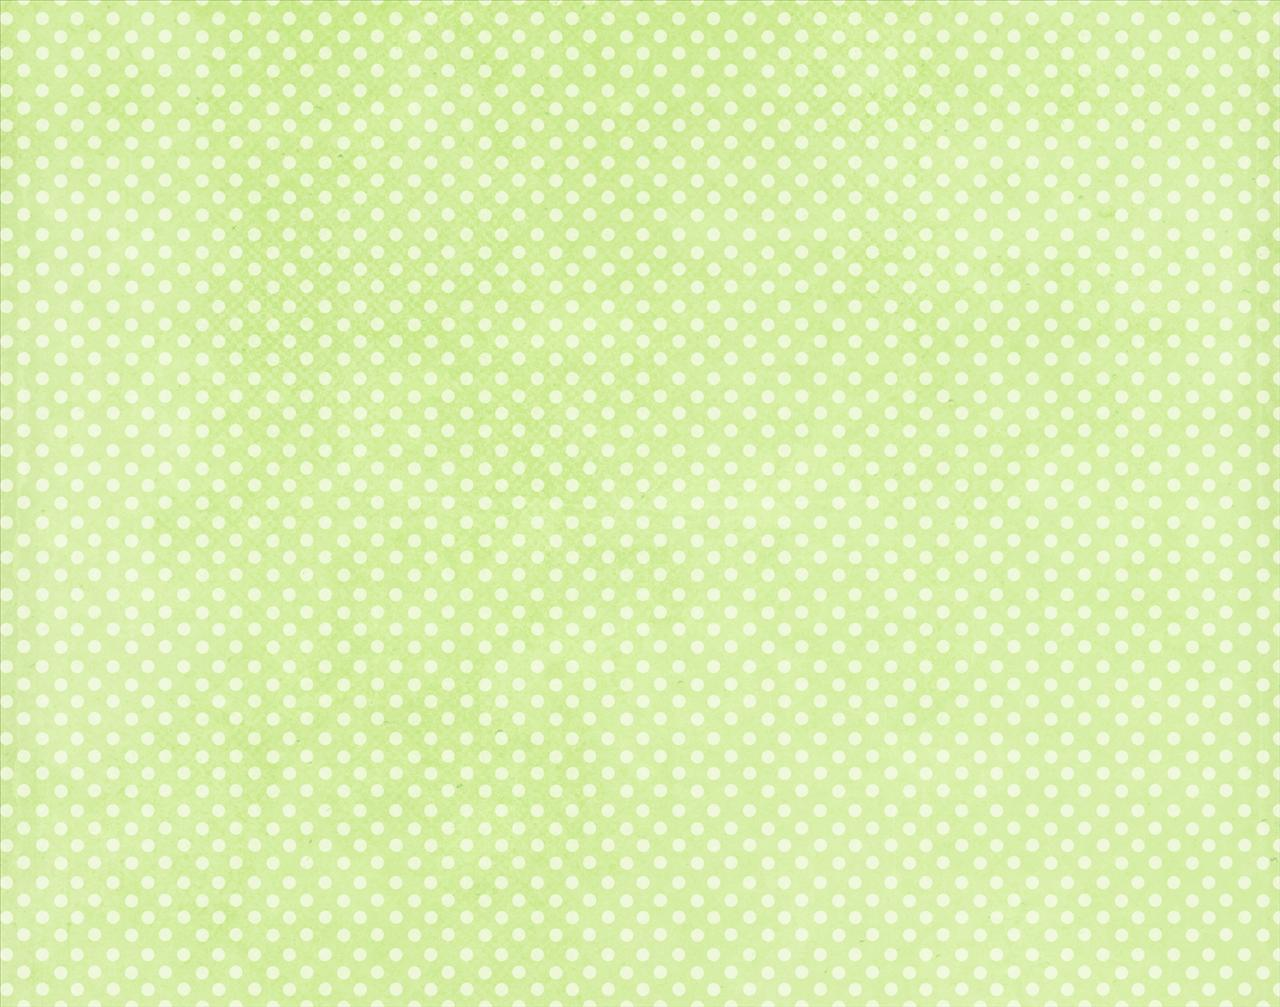 Ivory Dots on Green Backgrounds